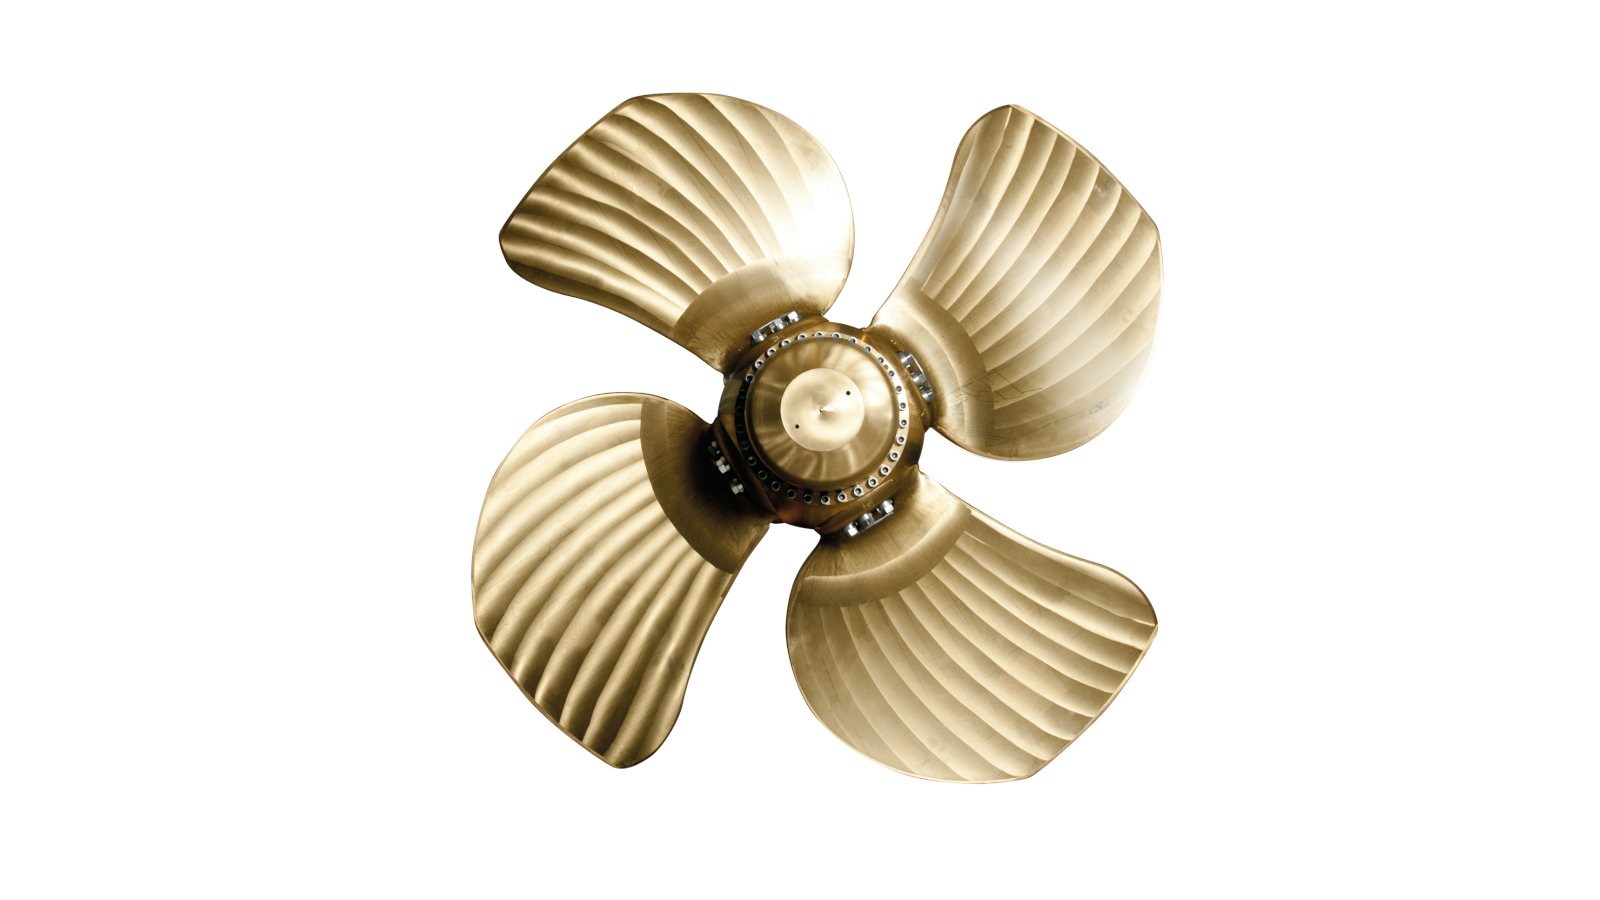 Verstellpropeller (Marine Propulsion Propeller, MPP)